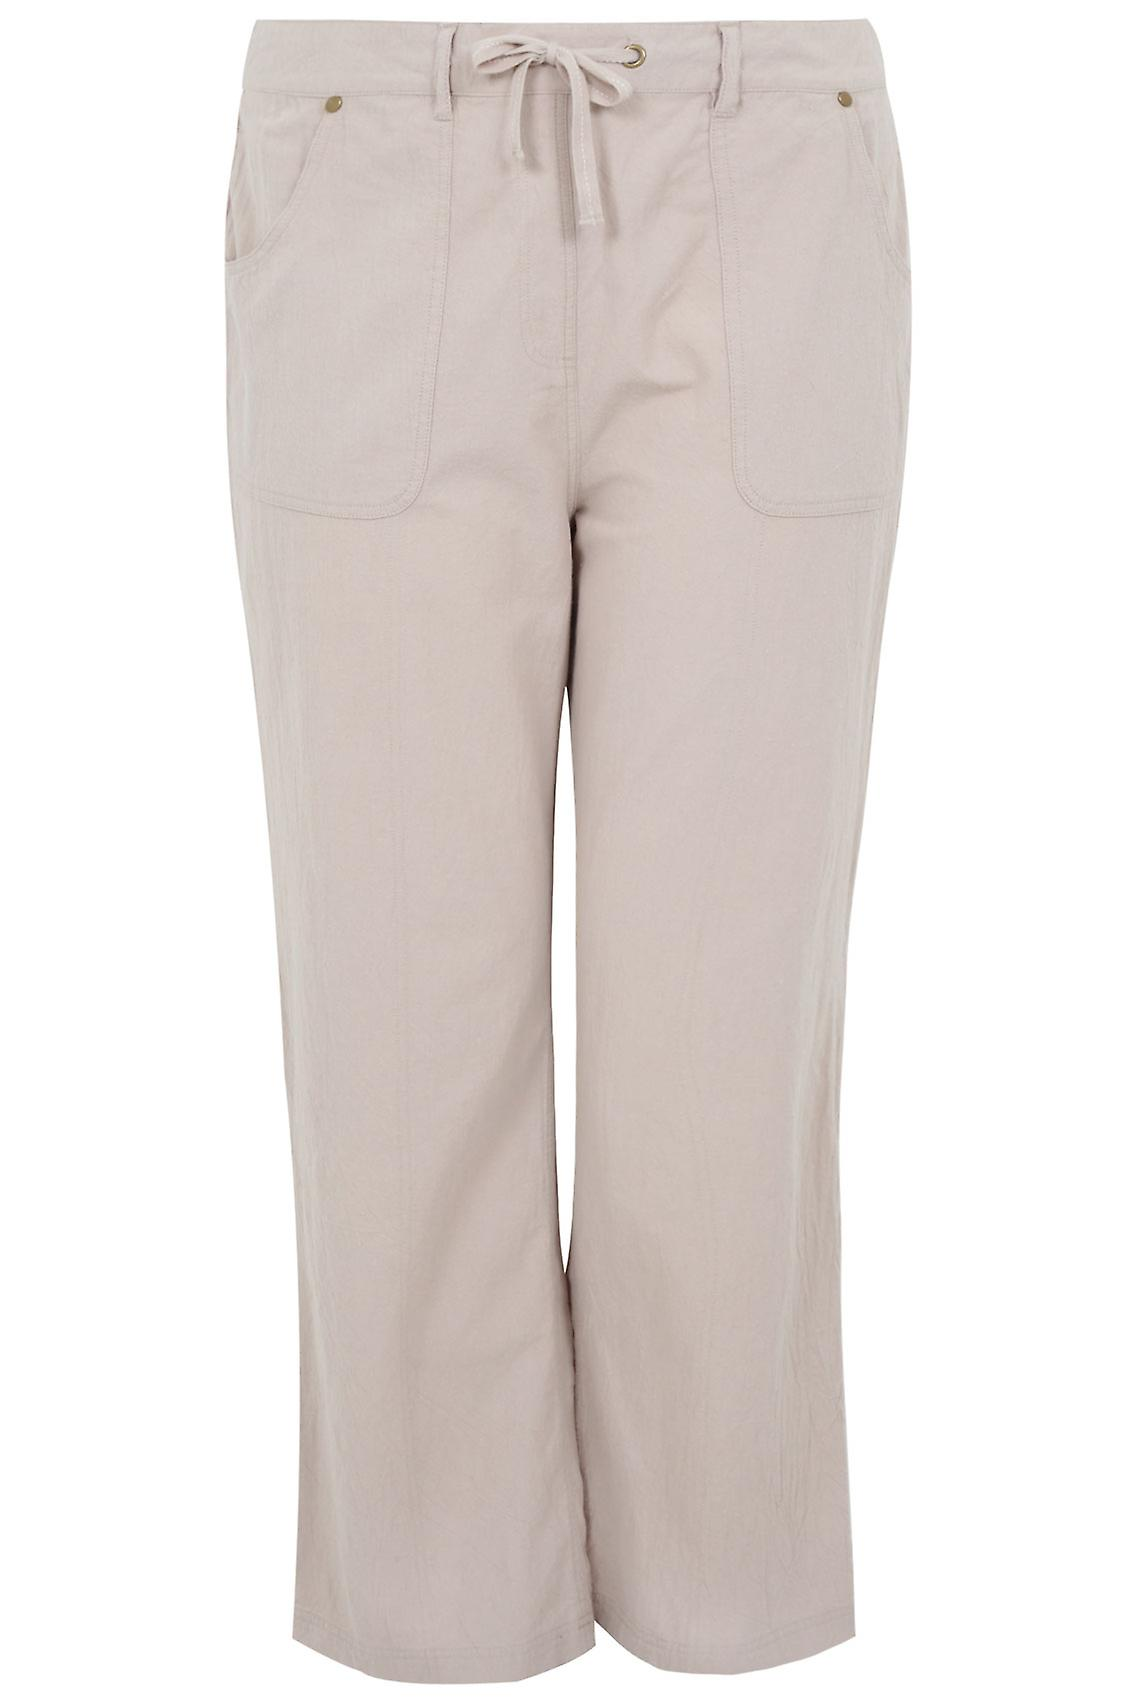 Stone Full Length Cool Cotton Trousers